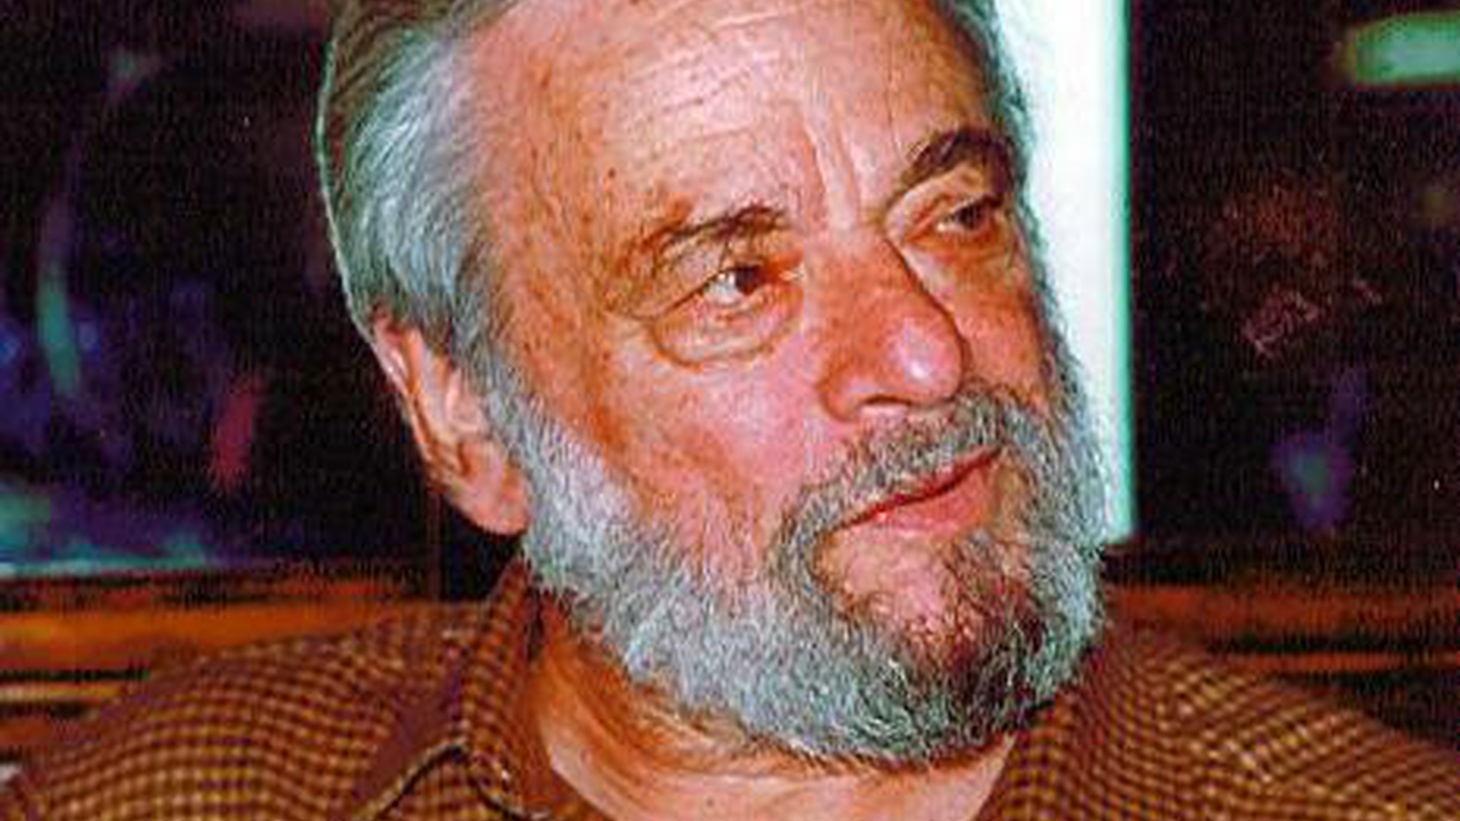 Finishing the Hat: Collected Lyrics (1954-1981) with Attendant Comments, Principles, Heresies, Grudges, Whines and Anecdotes (Knopf) The great Stephen Sondheim has at last produced a collection of lyrics from the first half of his career along with insights into the art of song writing for the theater...